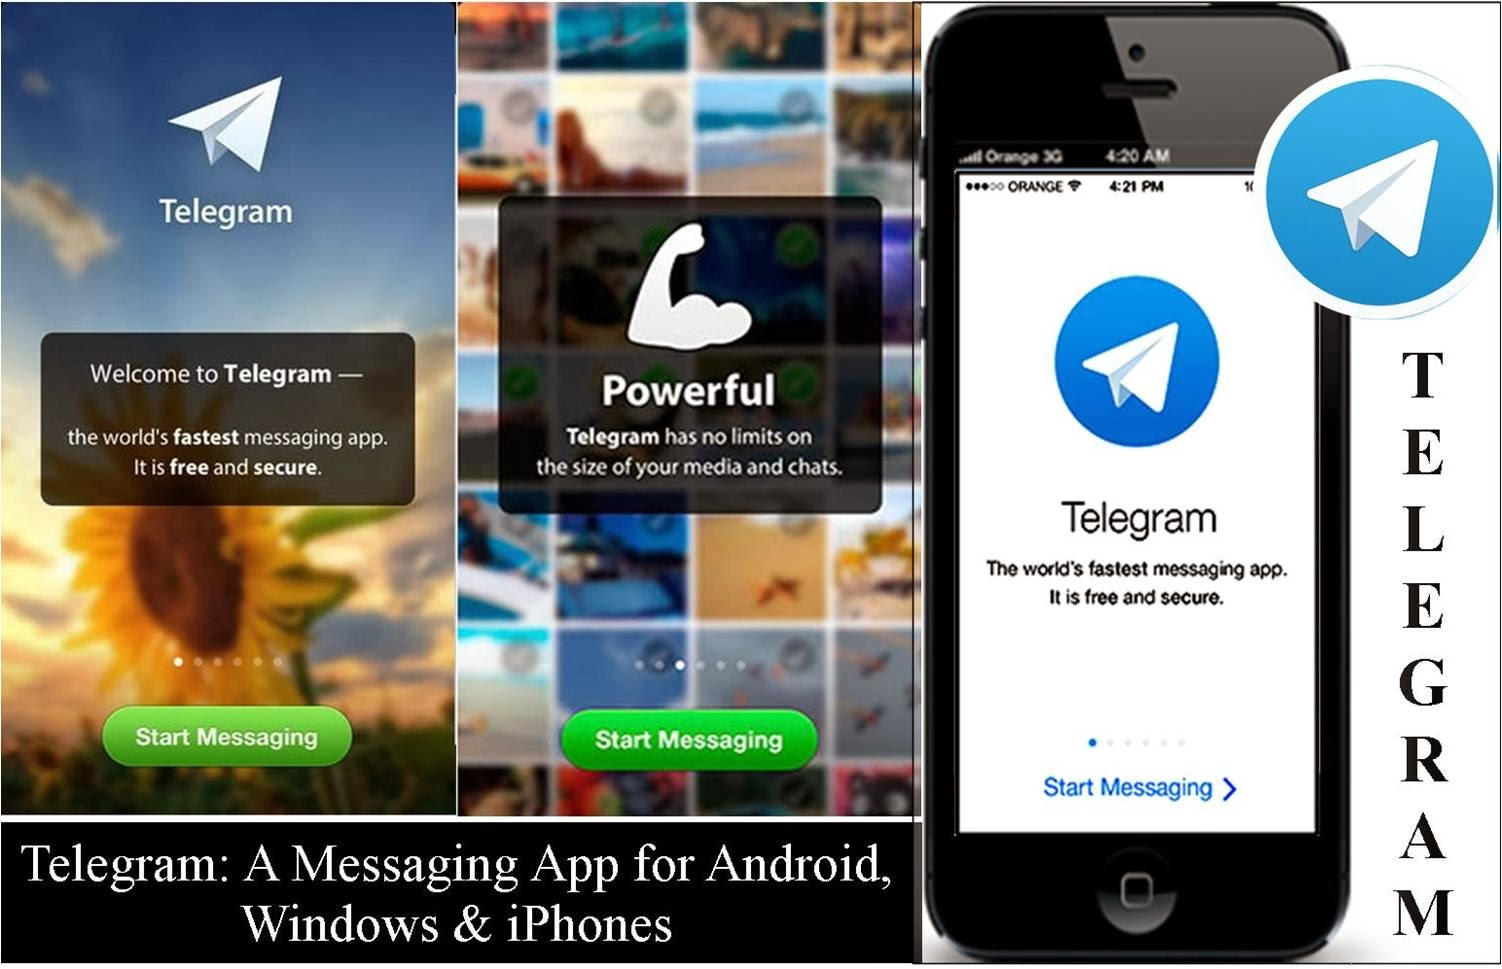 Telegram: a free instant messaging app for social networking